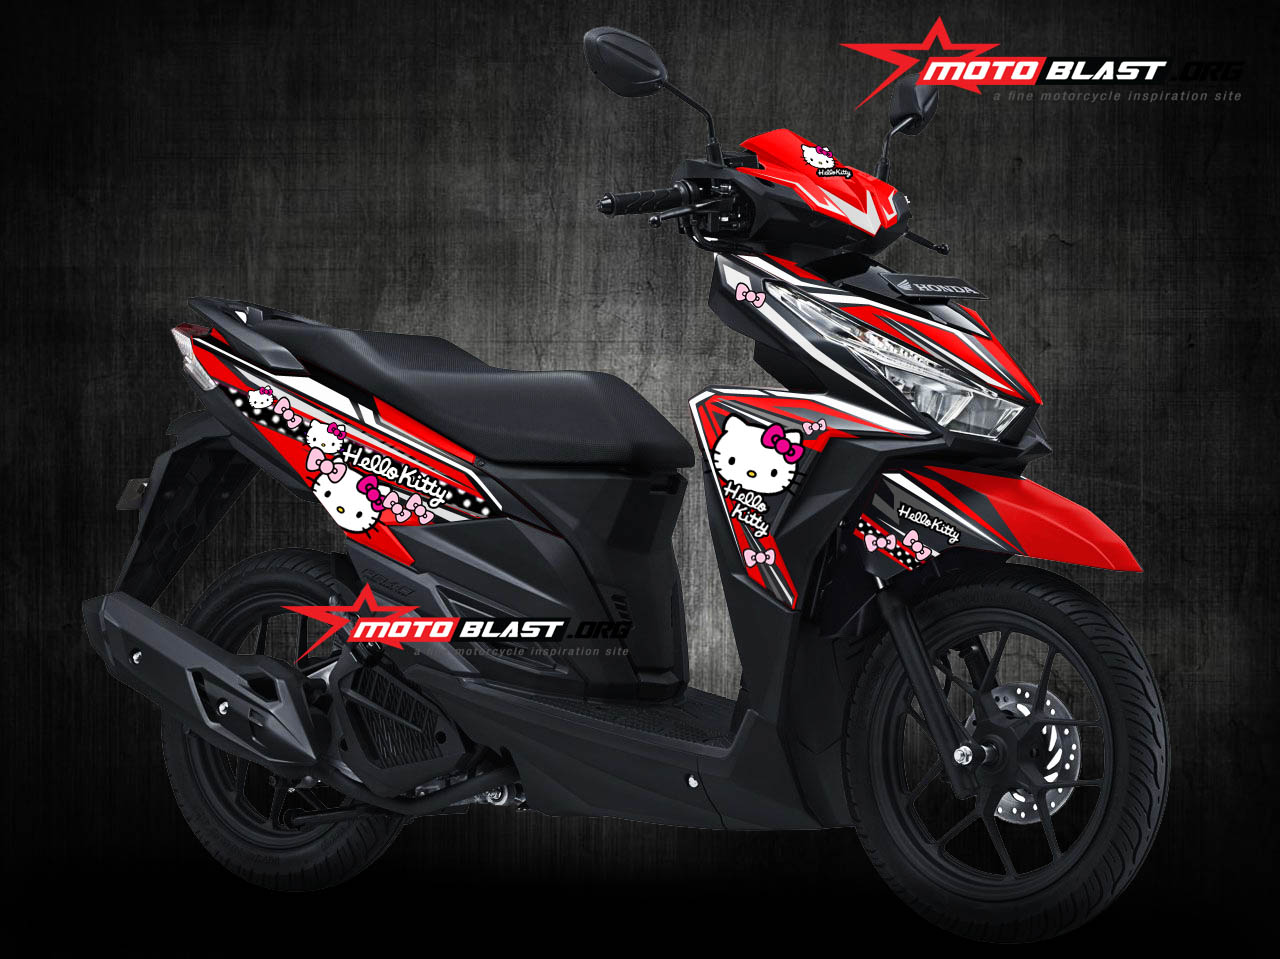 Modifikasi striping honda vario 125 150esp red hello kitty minnie mouse motoblast